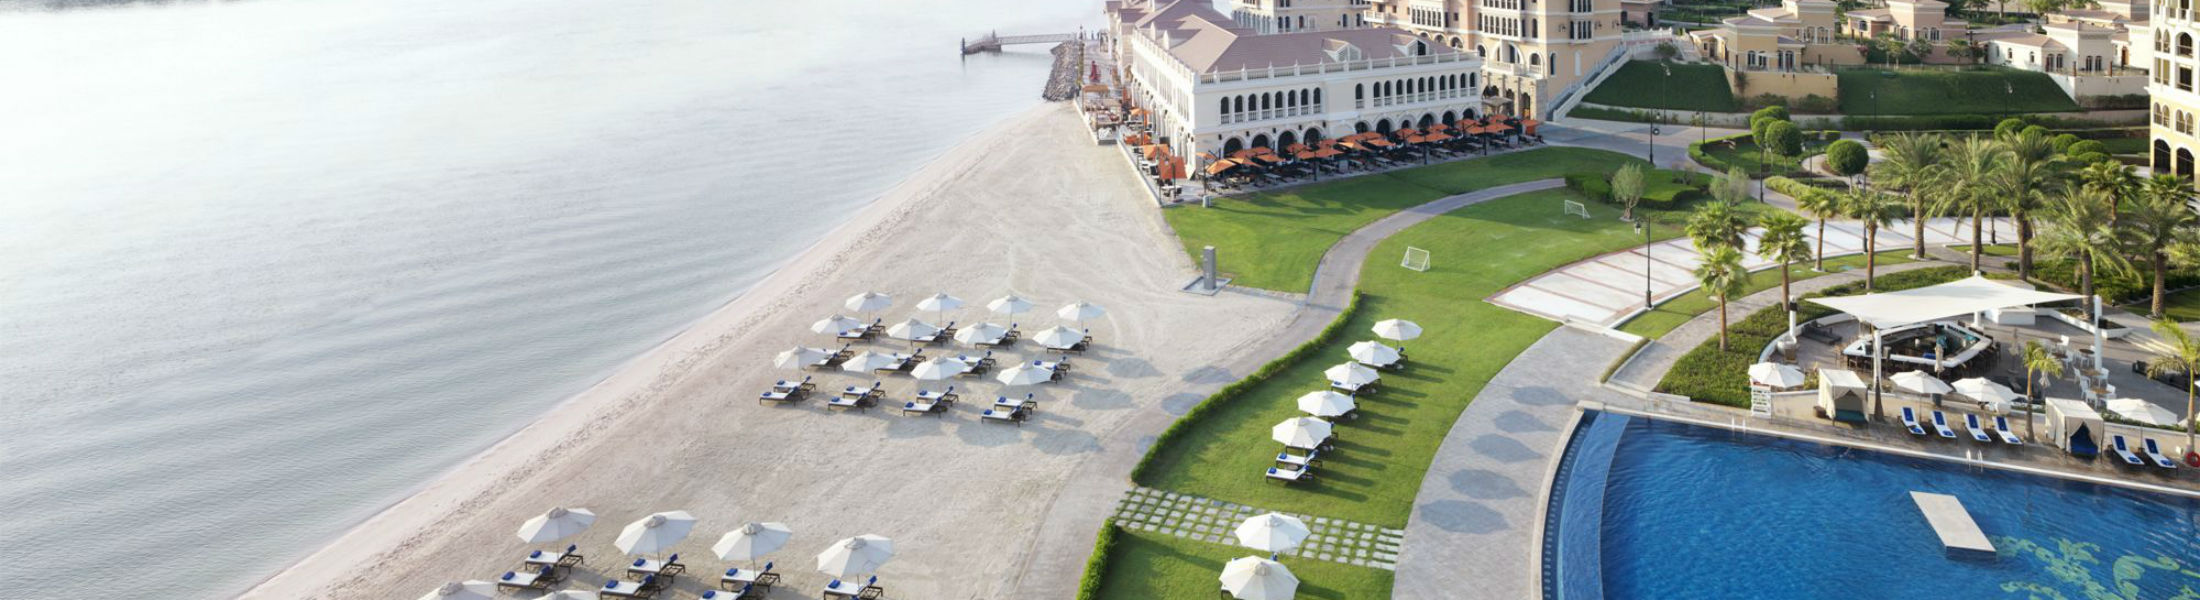 Aerial Beach view Ritz Cartlon Abu Dhabi